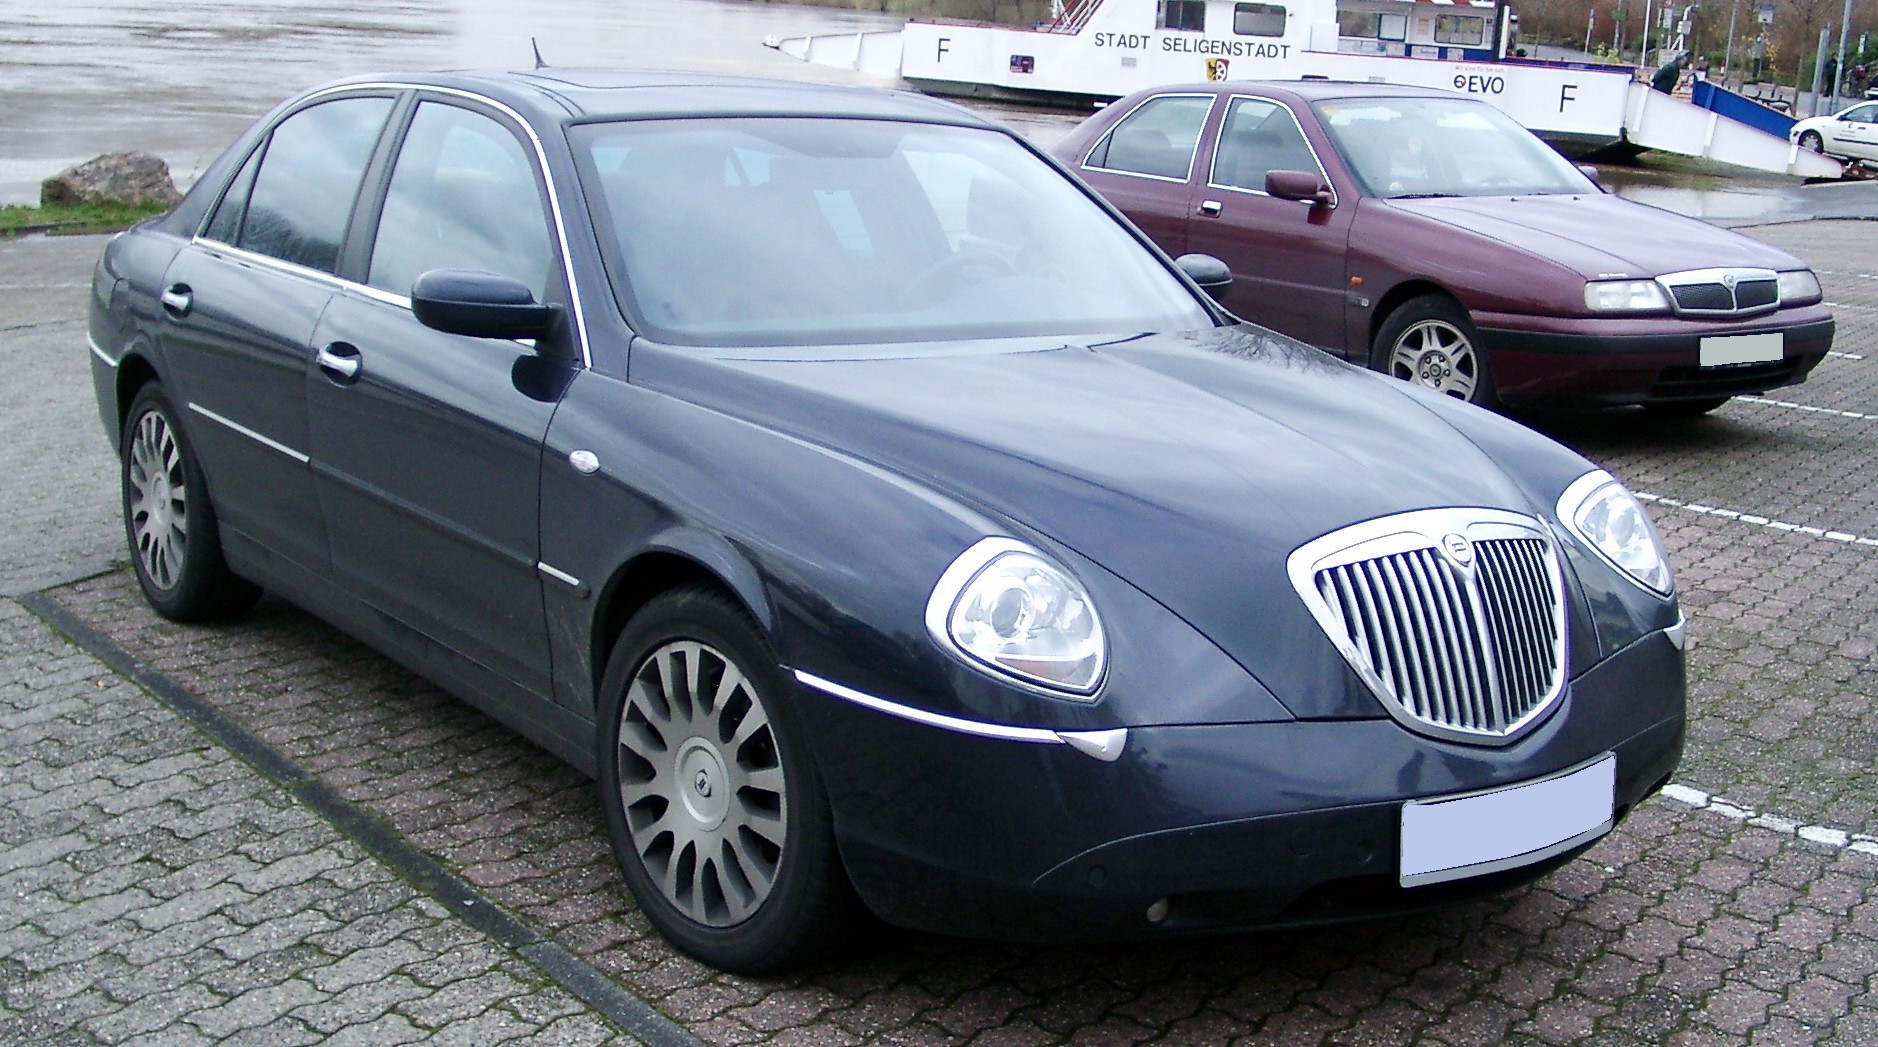 lancia thesis 2.4 jtd executive test